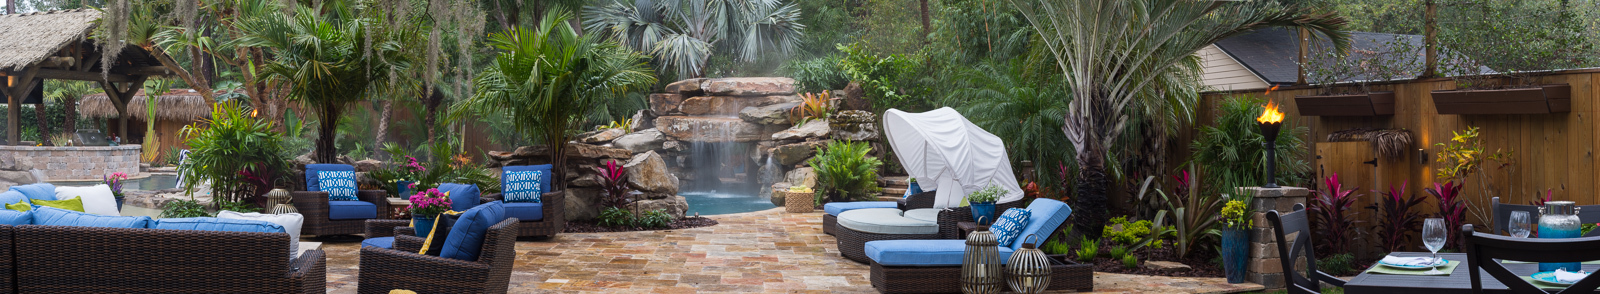 Jacksonville-custom-pool-grotto-lagoon-